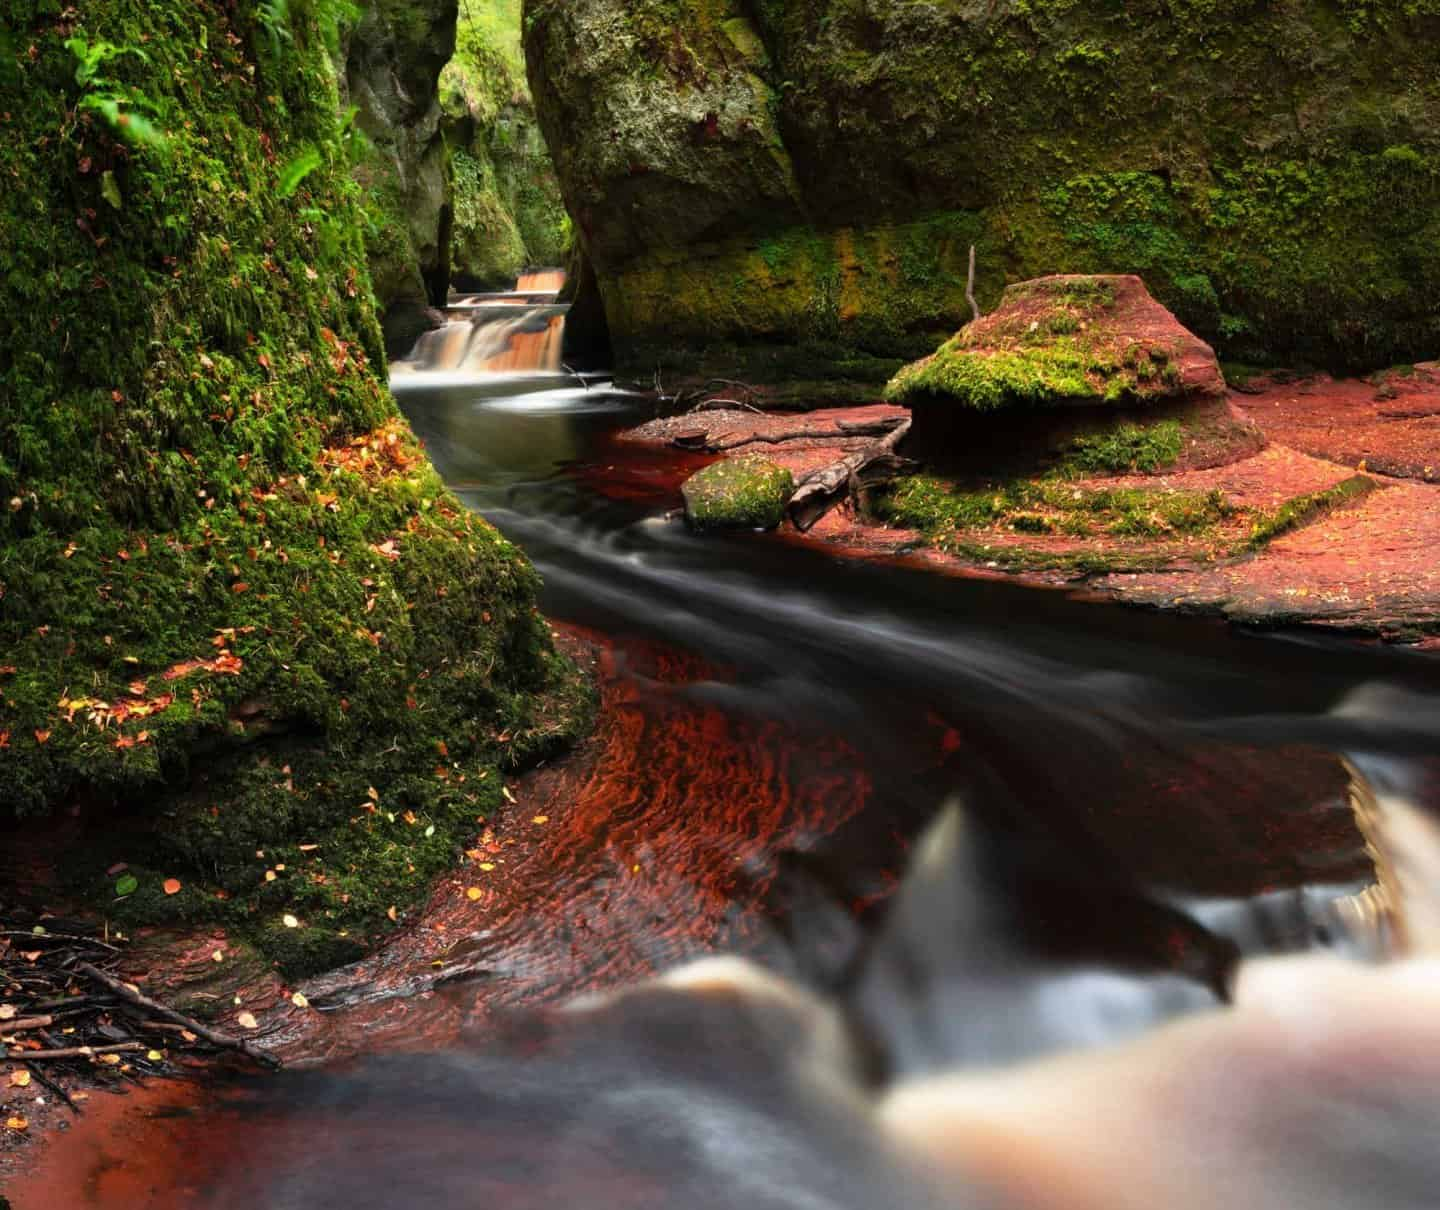 Blood red waters run through the Devils Pulpit at Finnich Glen.